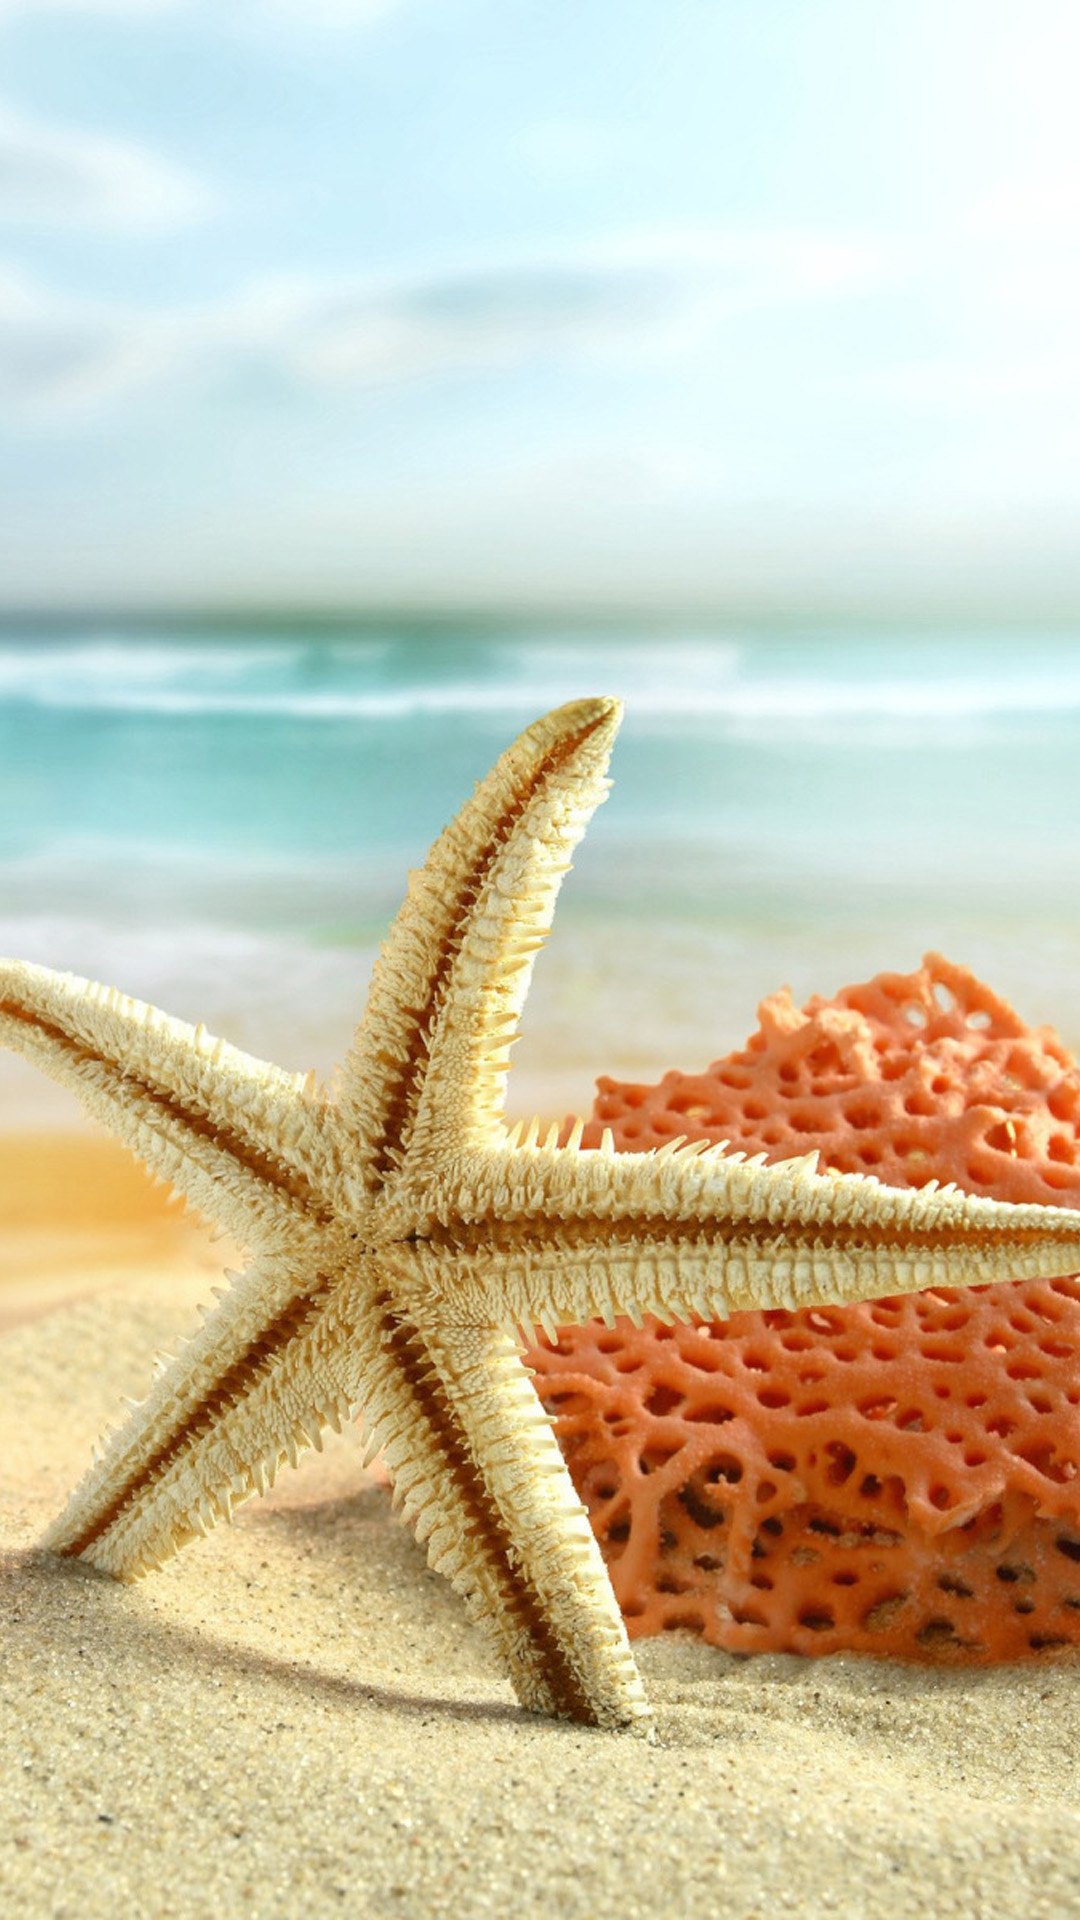 Apple Iphone Background Wallpapers Starfish Wallpapers High Quality Download Free